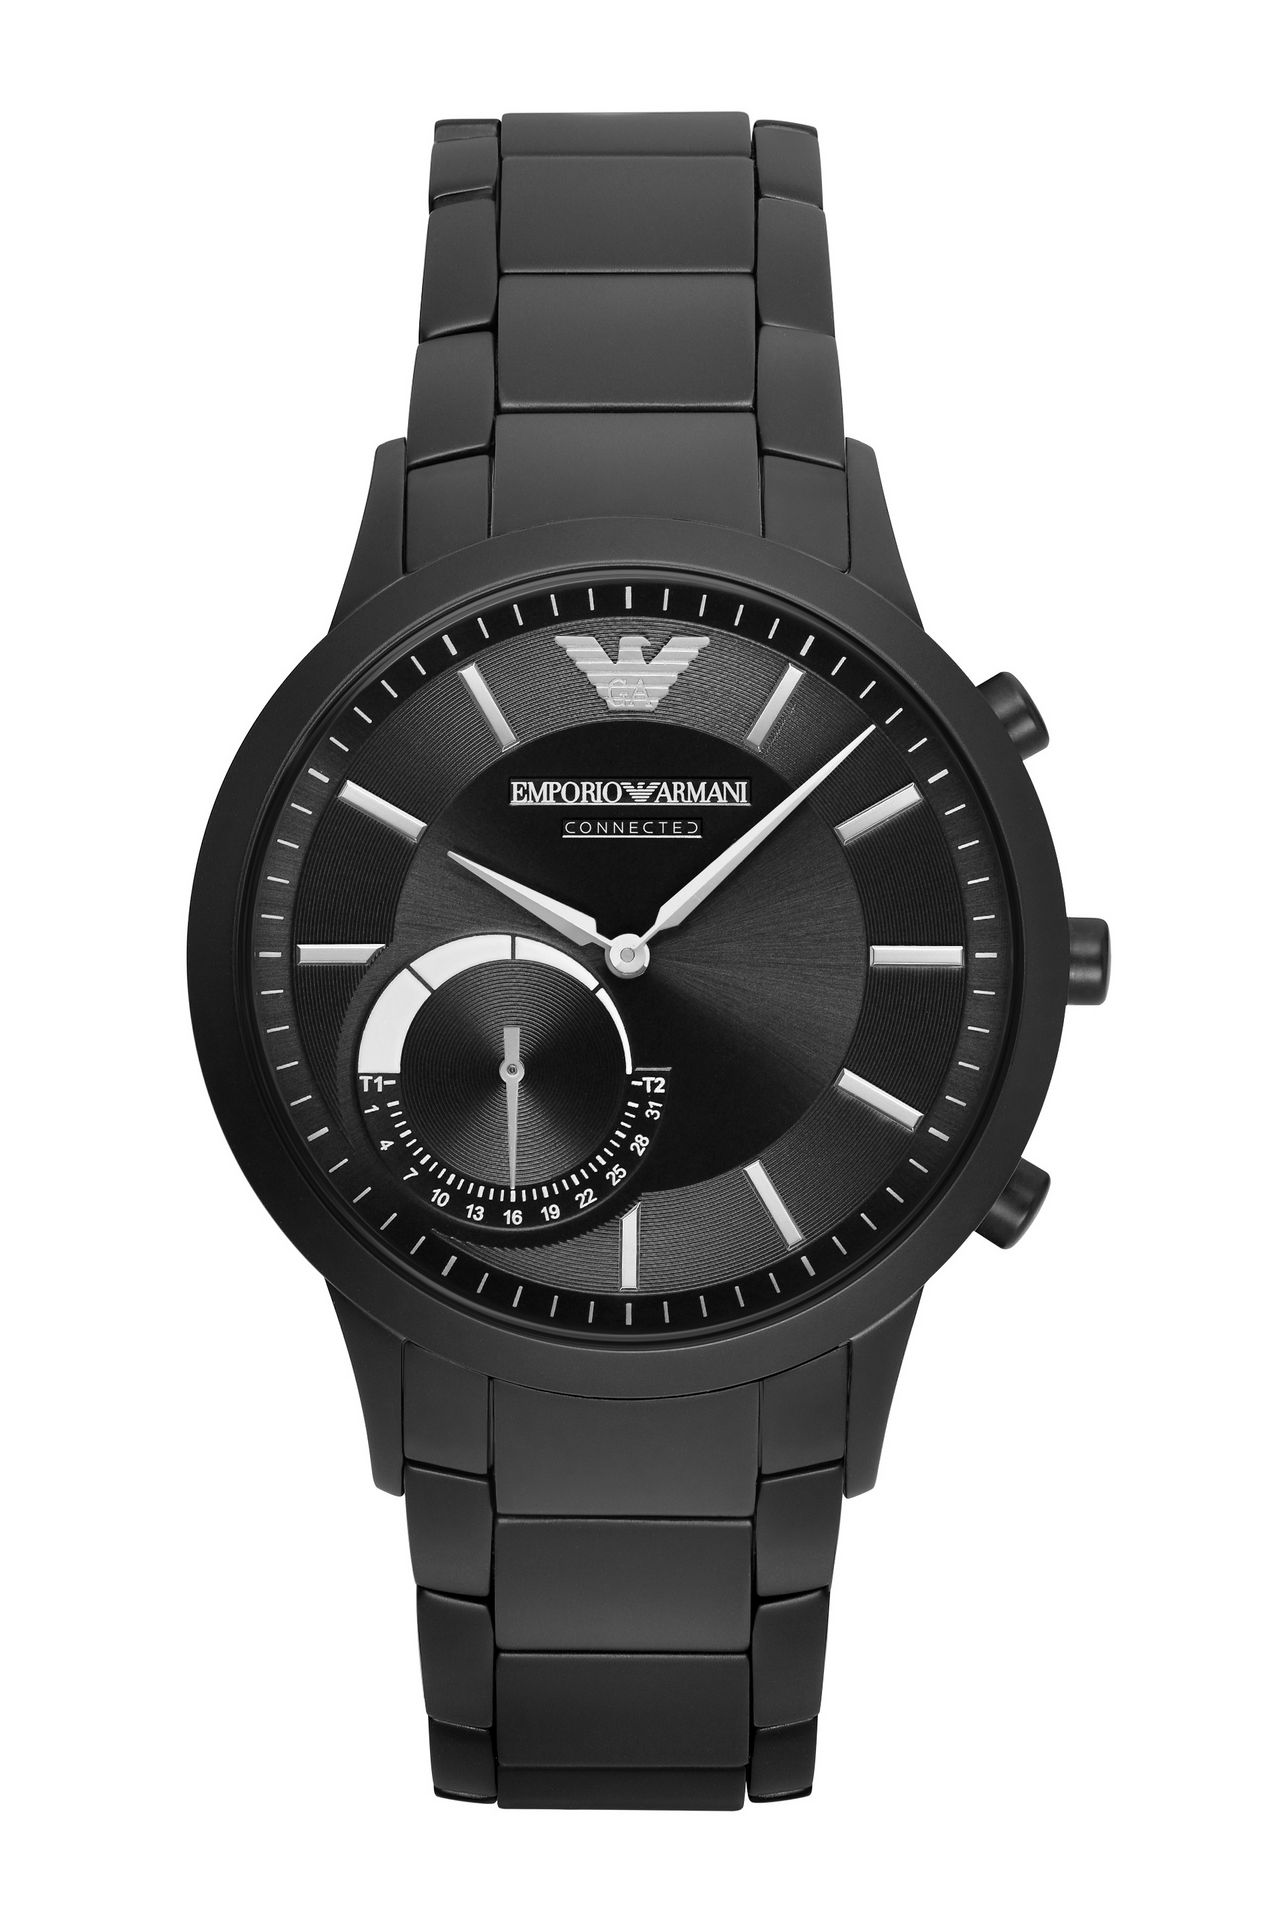 emporio armani men s watches swiss smartwatches quartz armani ea connected watches men ea connected watch